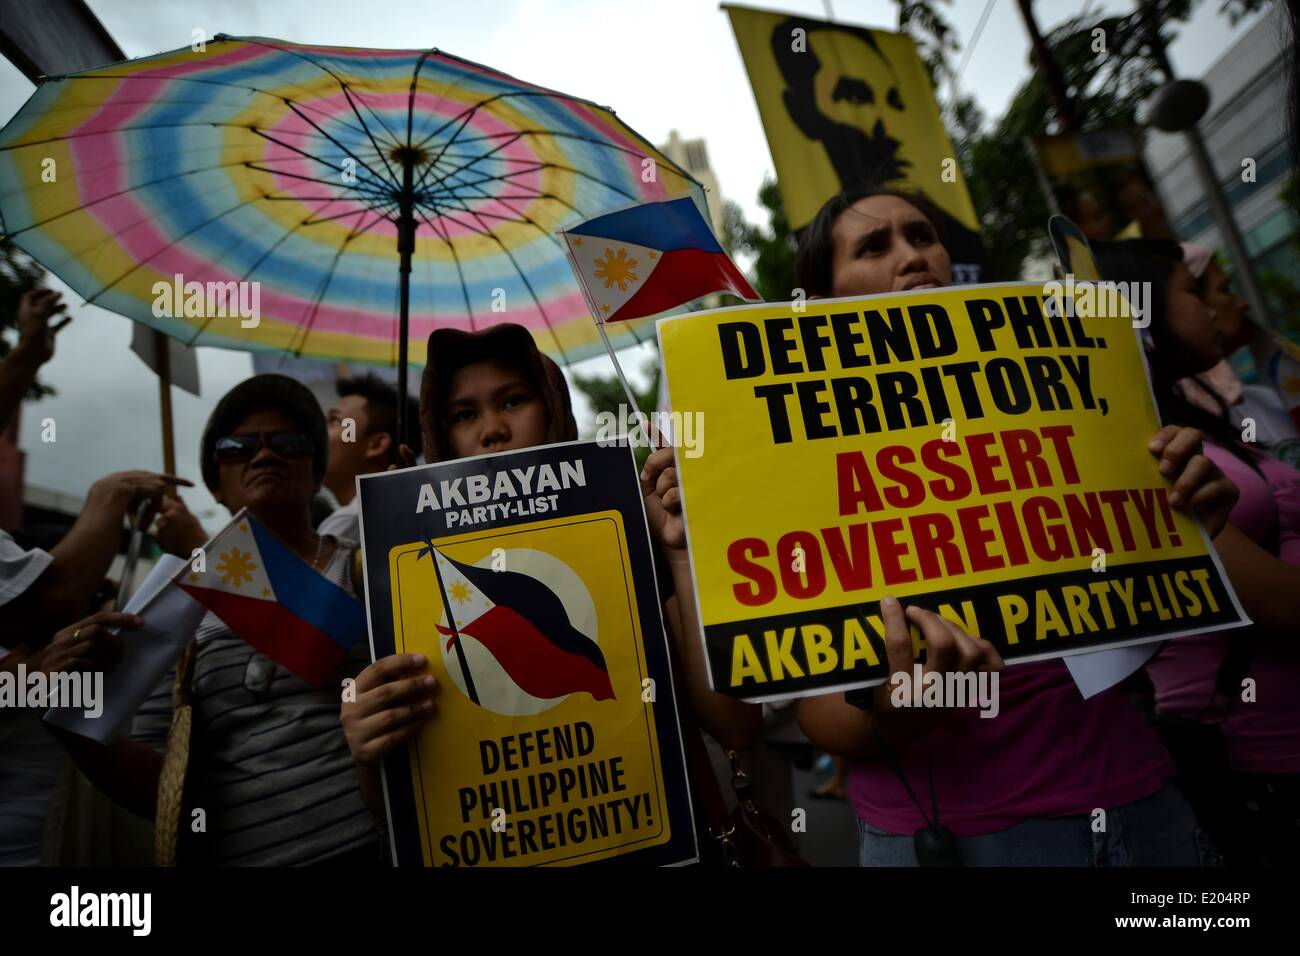 Makati, Philippines. 12th June, 2014. Demonstrators hold a protest outside the Chinese consulate in Makati, Metro - Stock Image